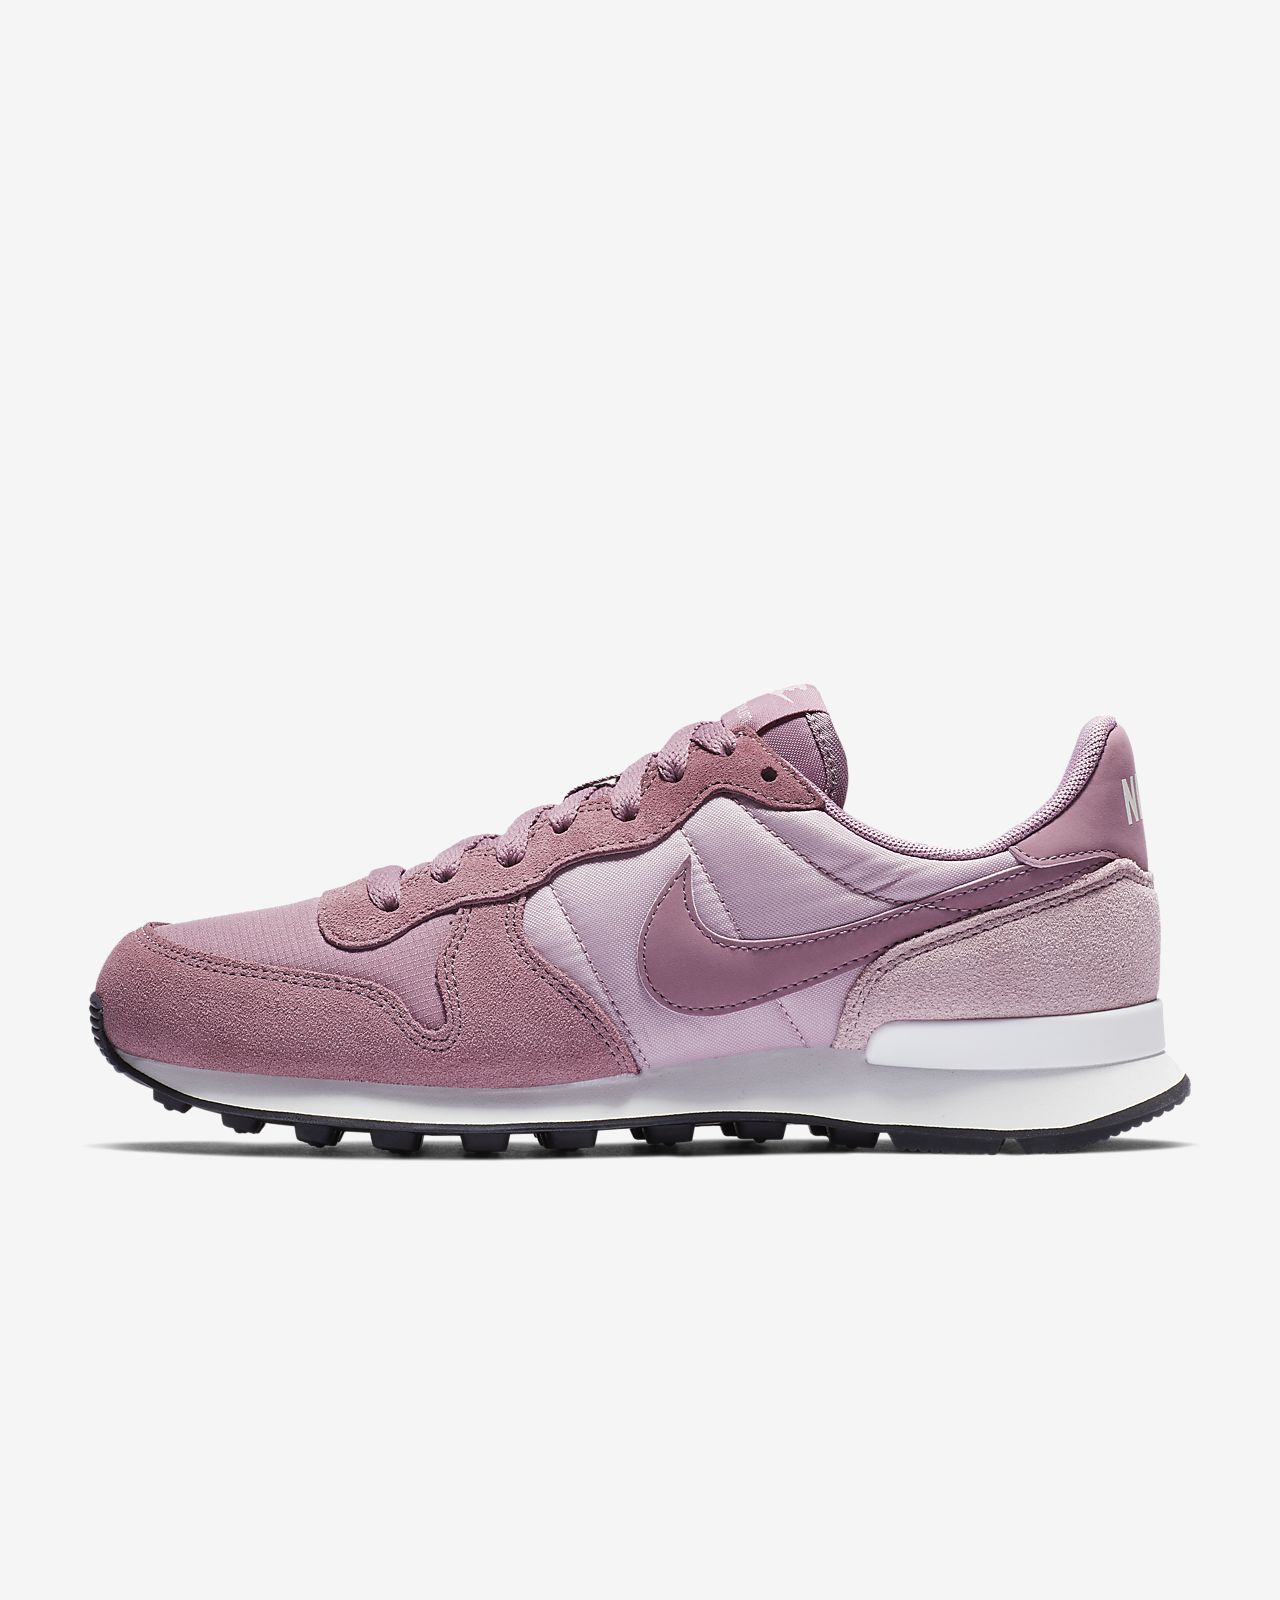 Nike Internationalist Women s Shoe. Nike.com AU 75ace4265e42